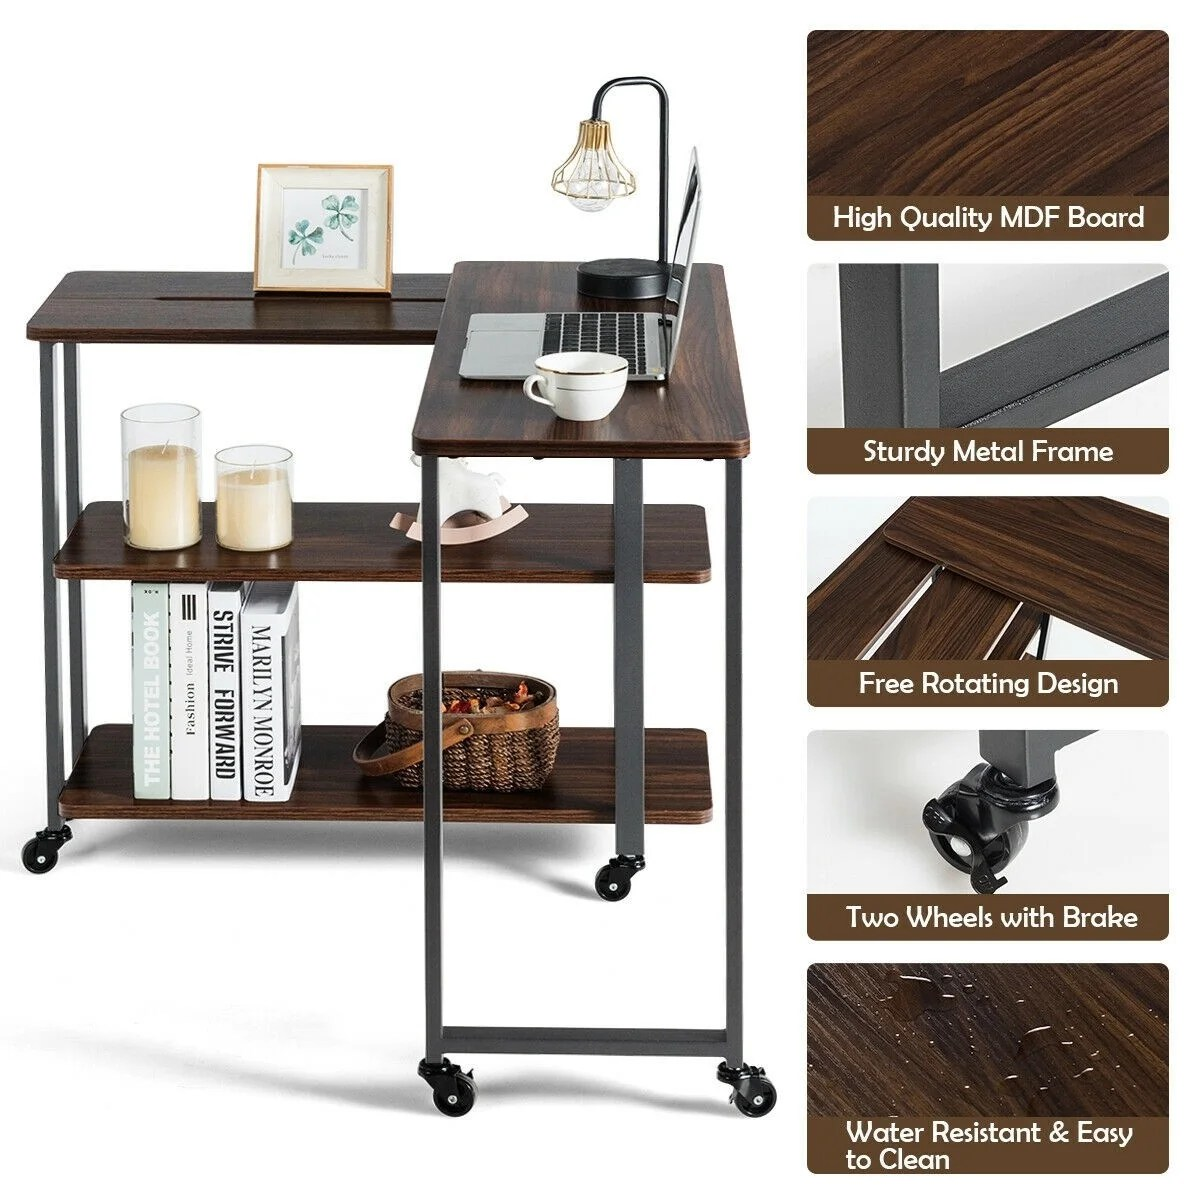 360 Rotating Sofa Side Table With Storage Shelves And Wheels Overstock 32812542 Walnut